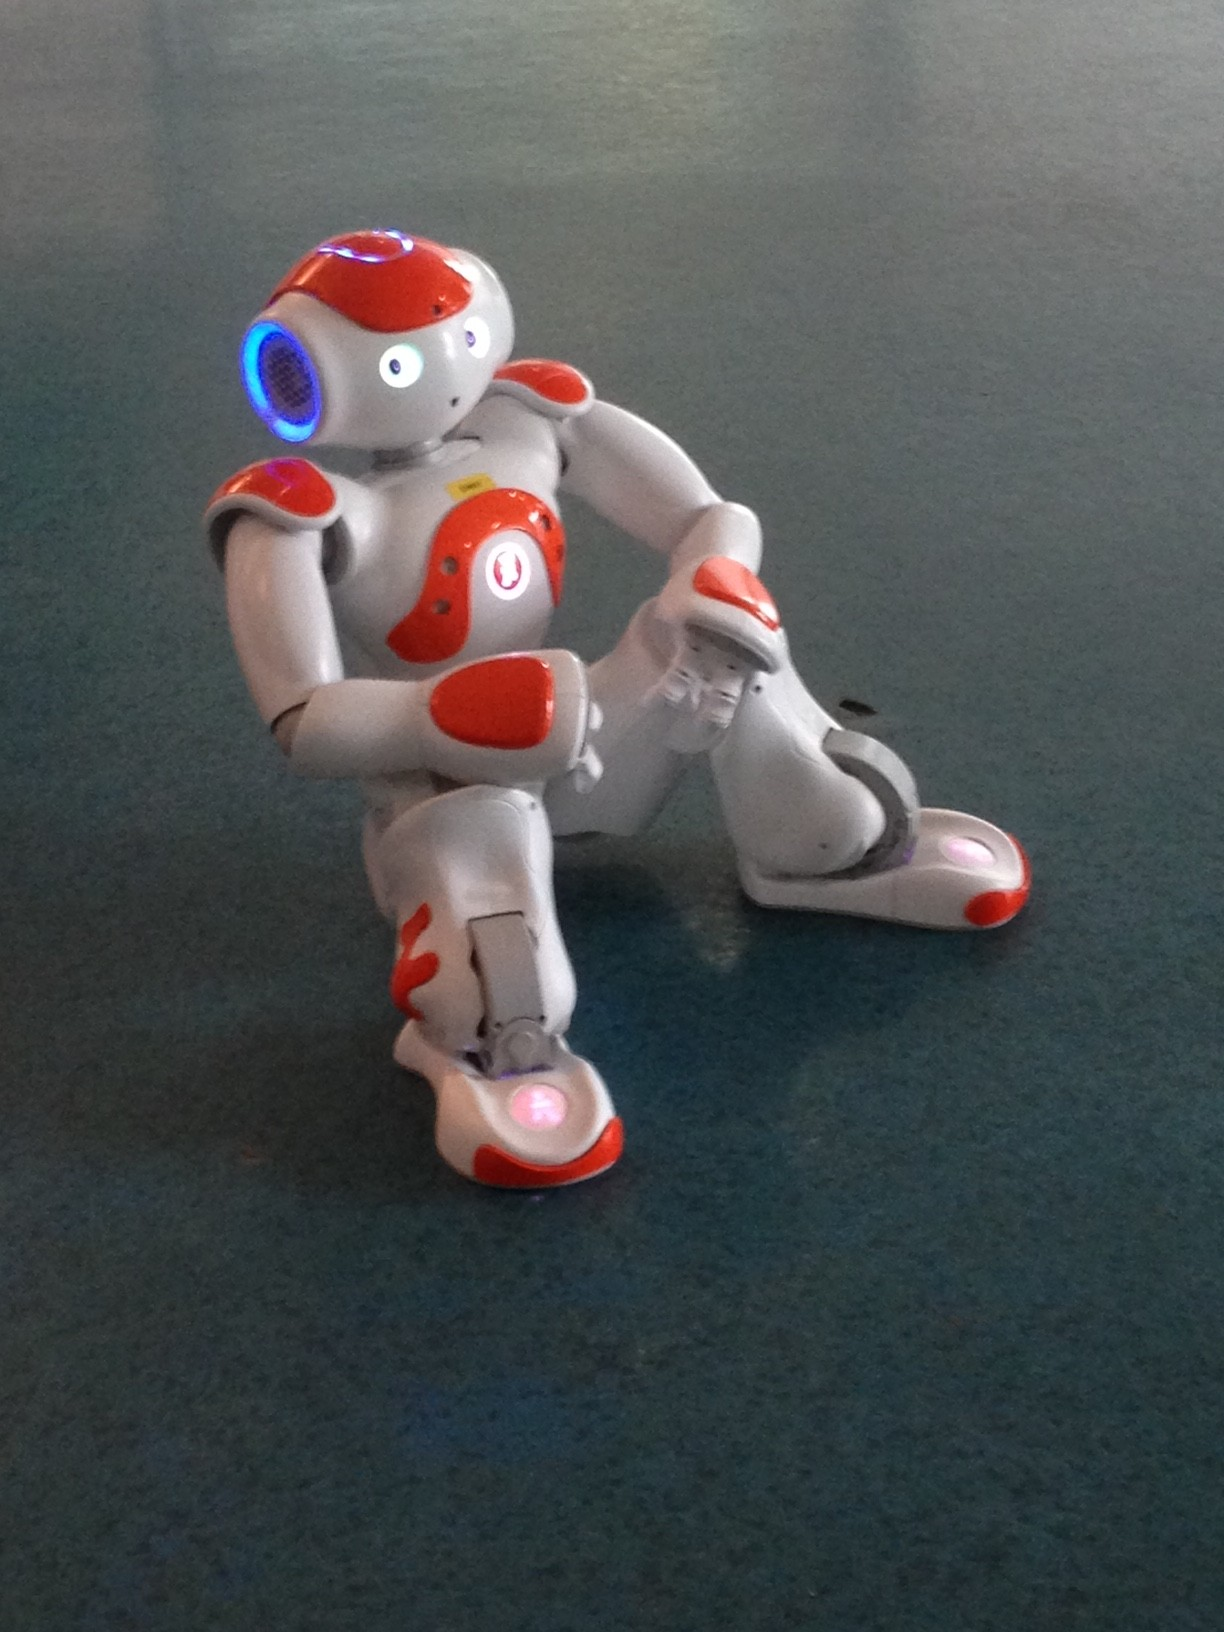 """Peter the Robot – """"WOULD YOU LIKE TO PLAY AGAIN?"""""""